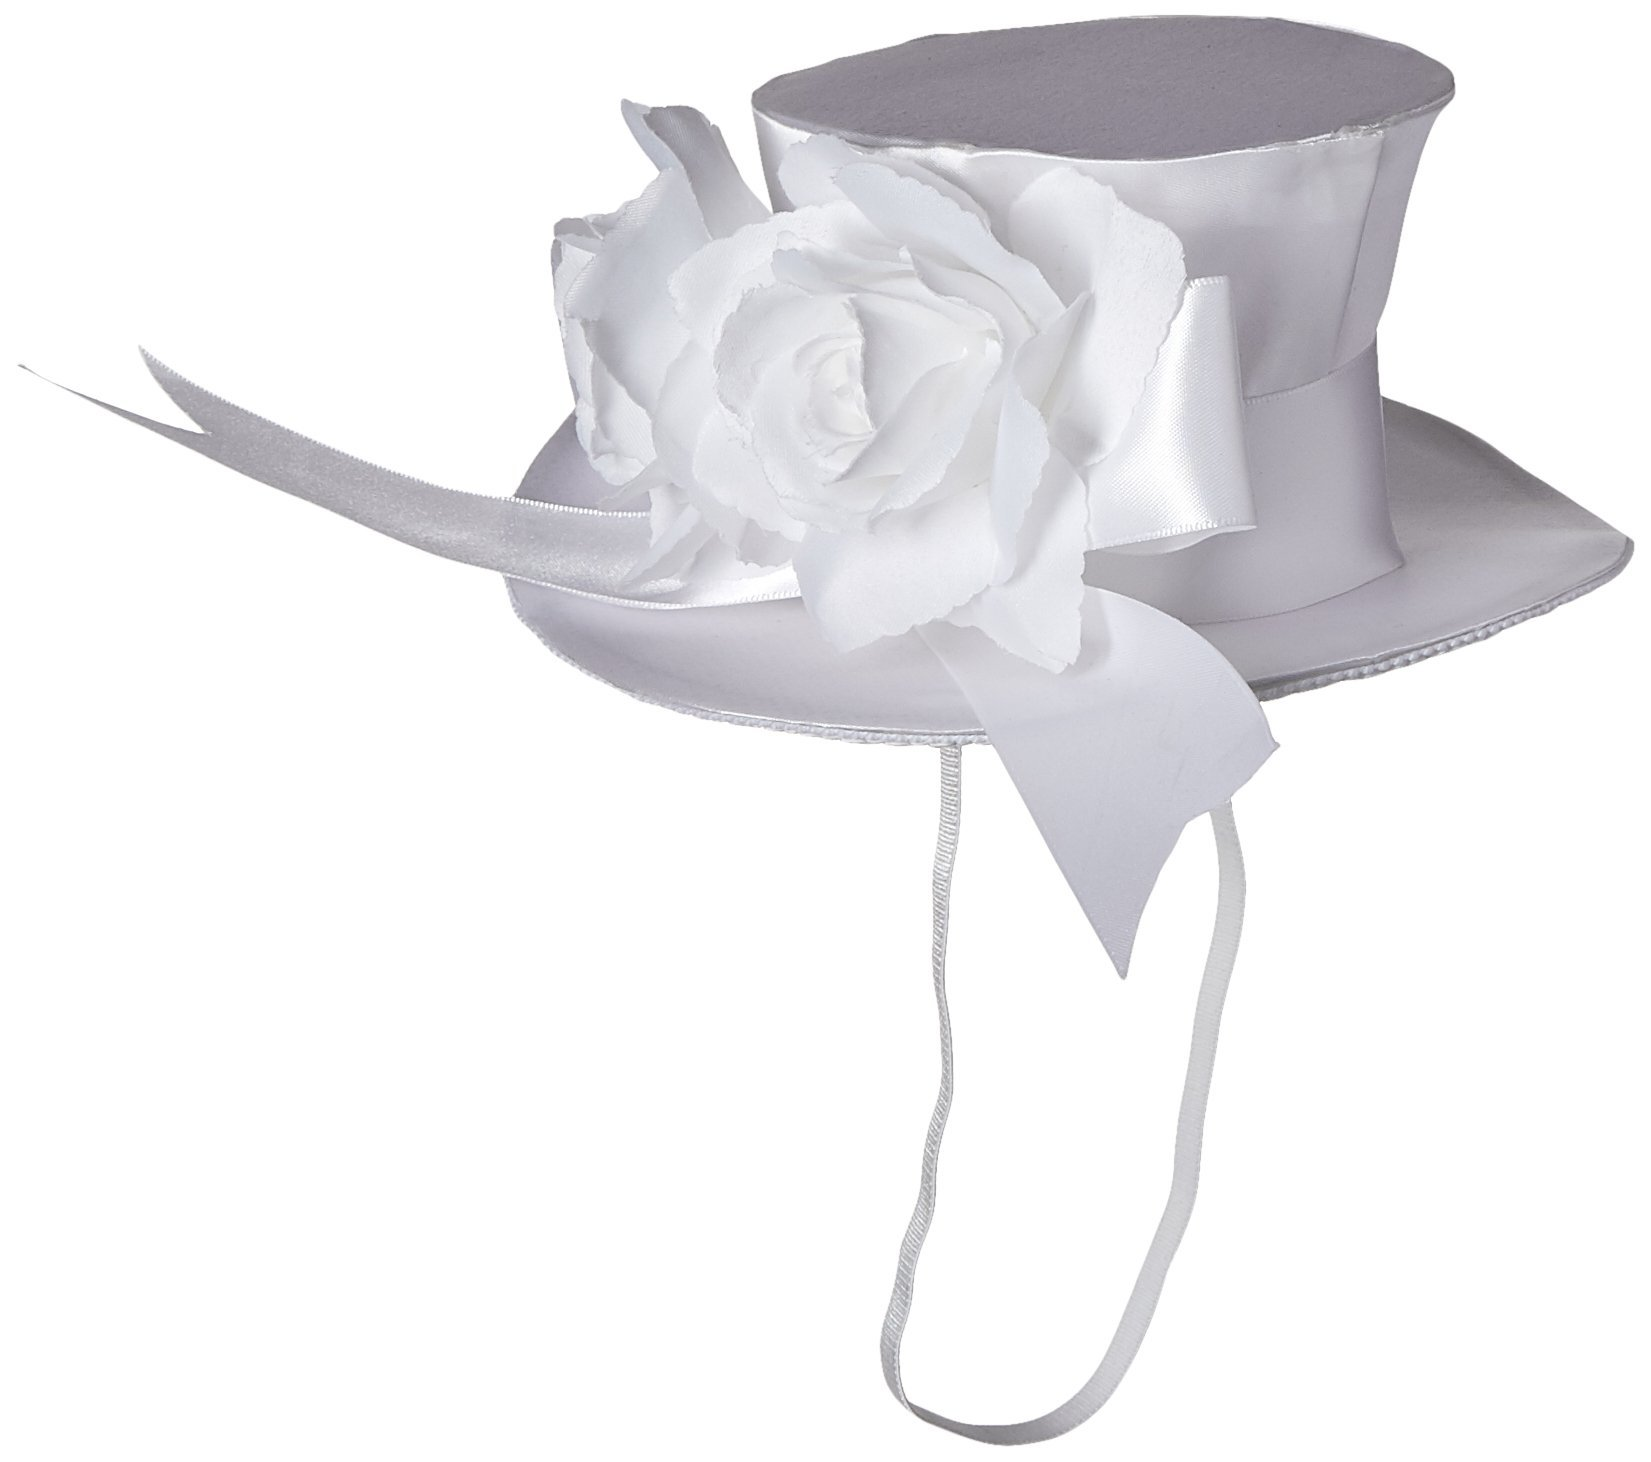 Leg Avenue Satin Top Hat With Flower And Bow Accent, White, One Size